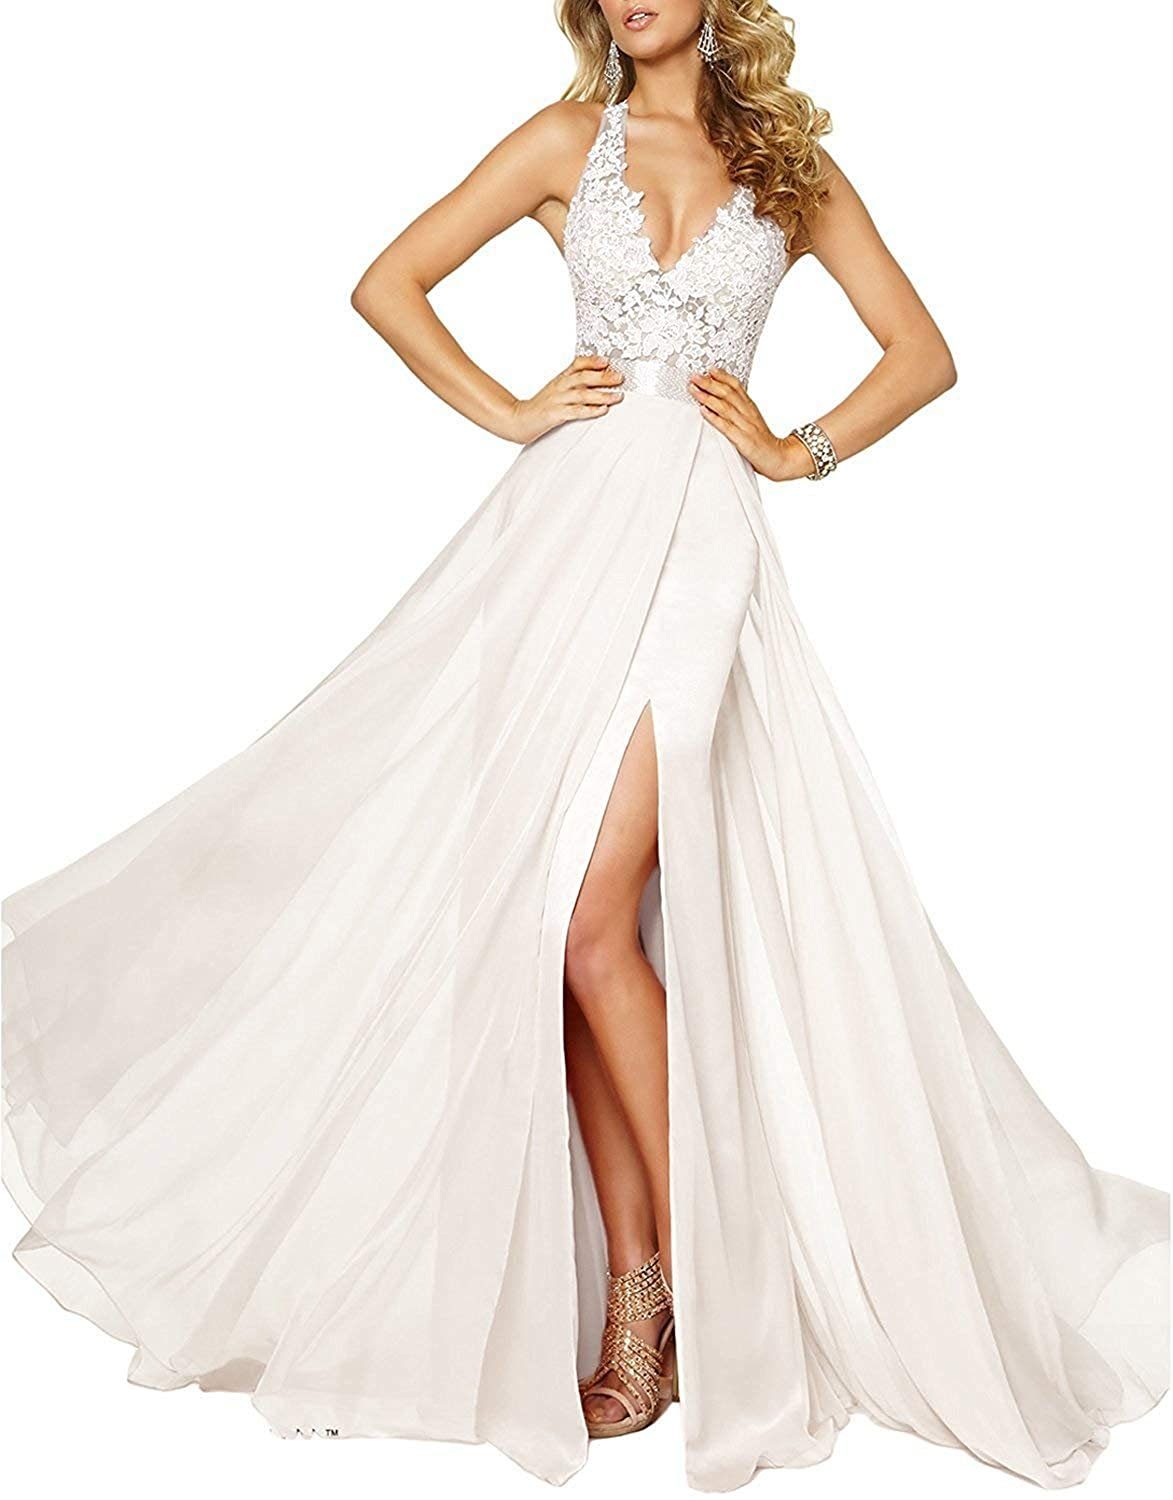 007712dd80e UGLY Women s Side Slit V-Neck Prom Dresses Sexy Straps Chiffon Evening  Gowns UG015 at Amazon Women s Clothing store